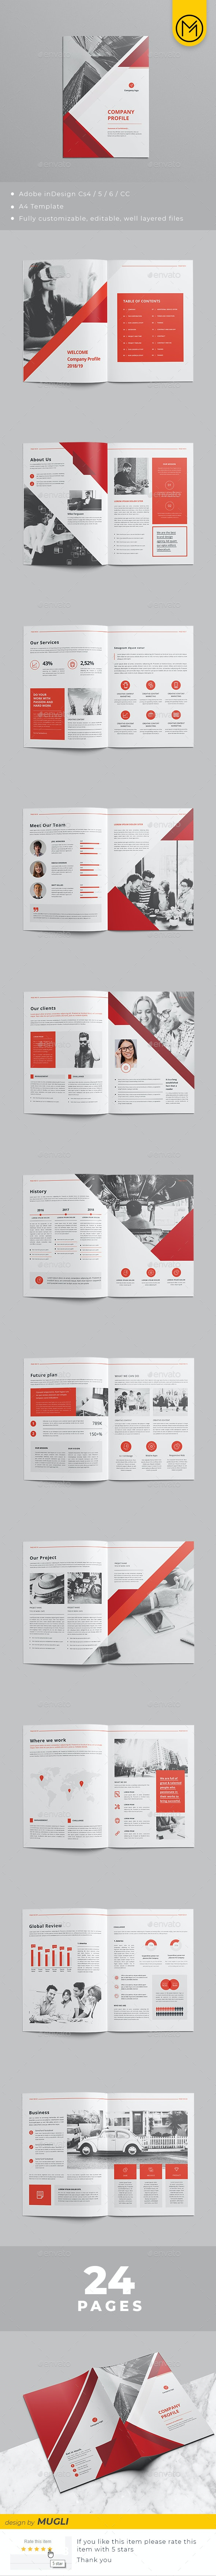 Brochures Design - Corporate Brochures